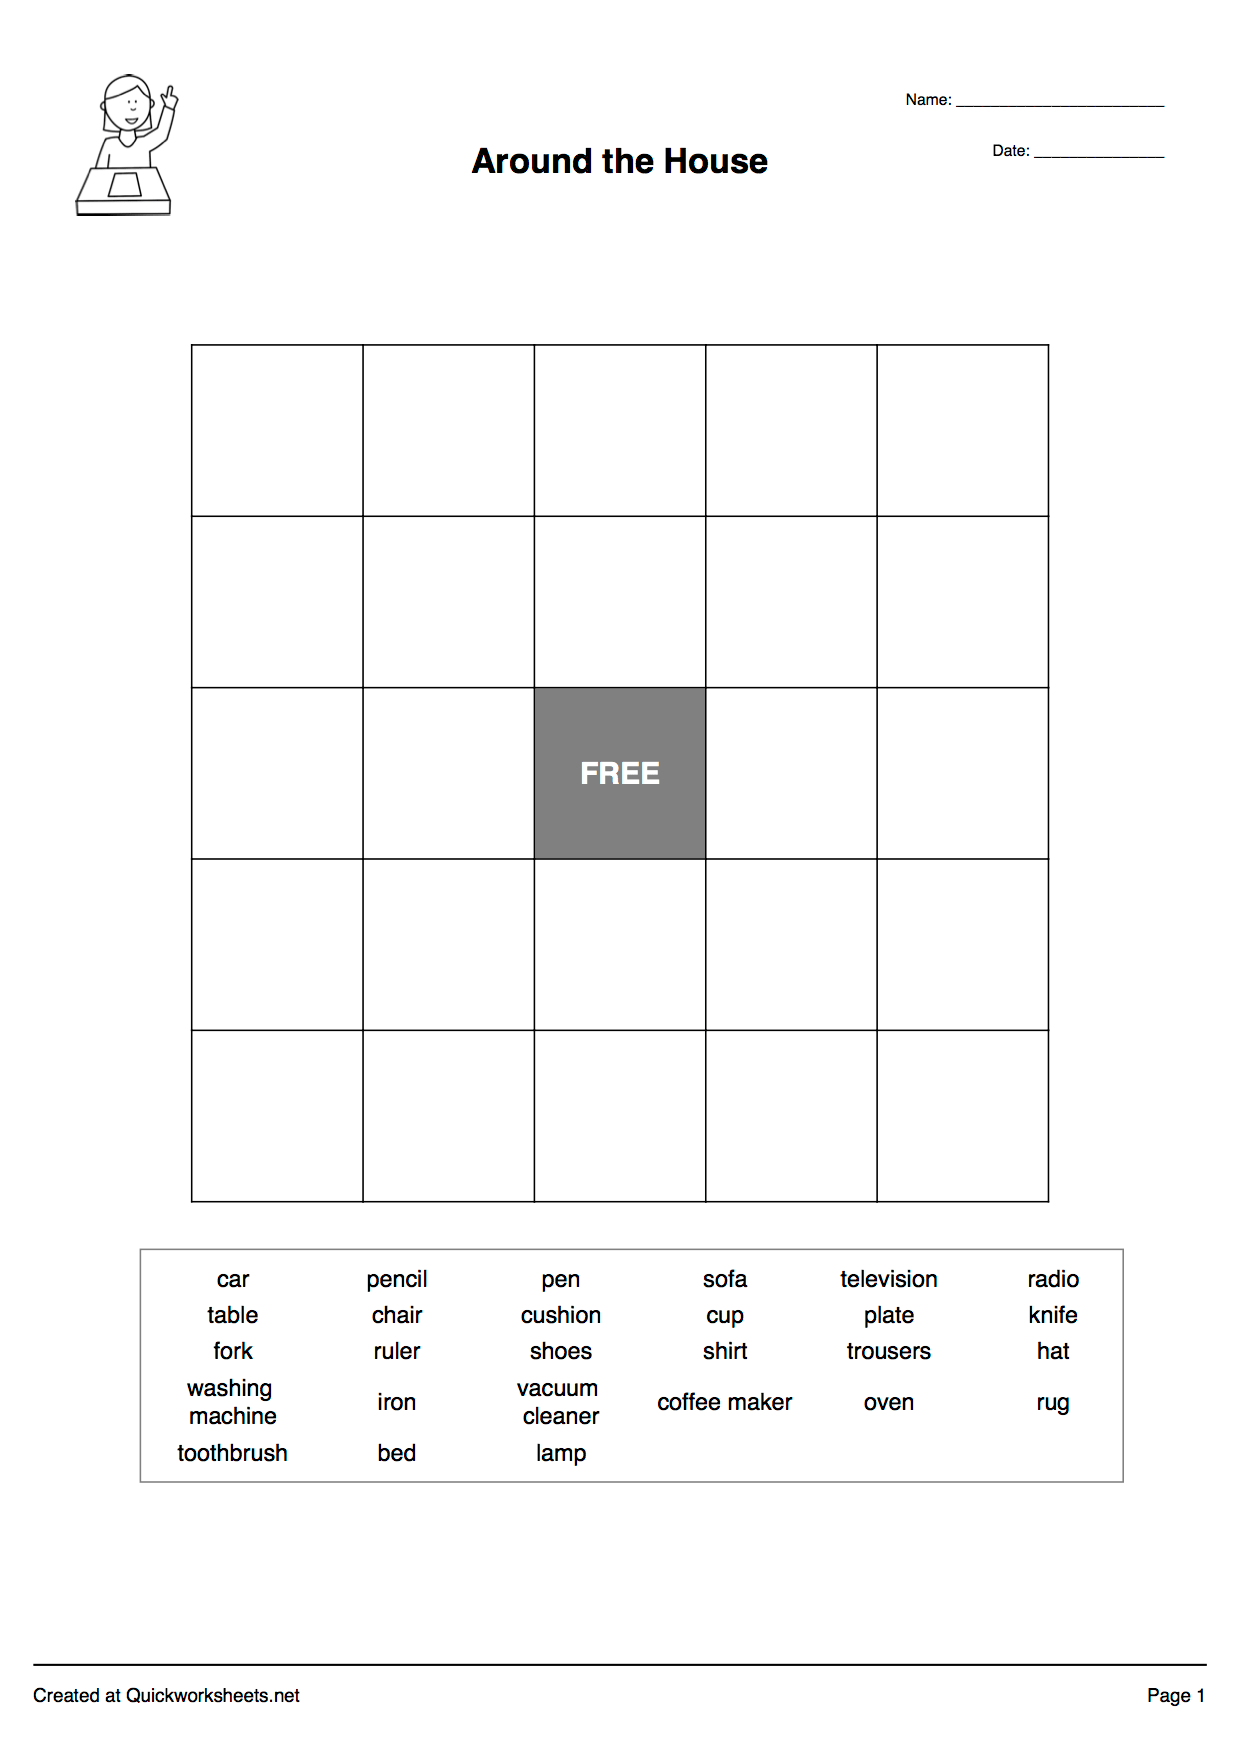 Word Scramble Wordsearch Crossword Matching Pairs And Other Worksheet Makers